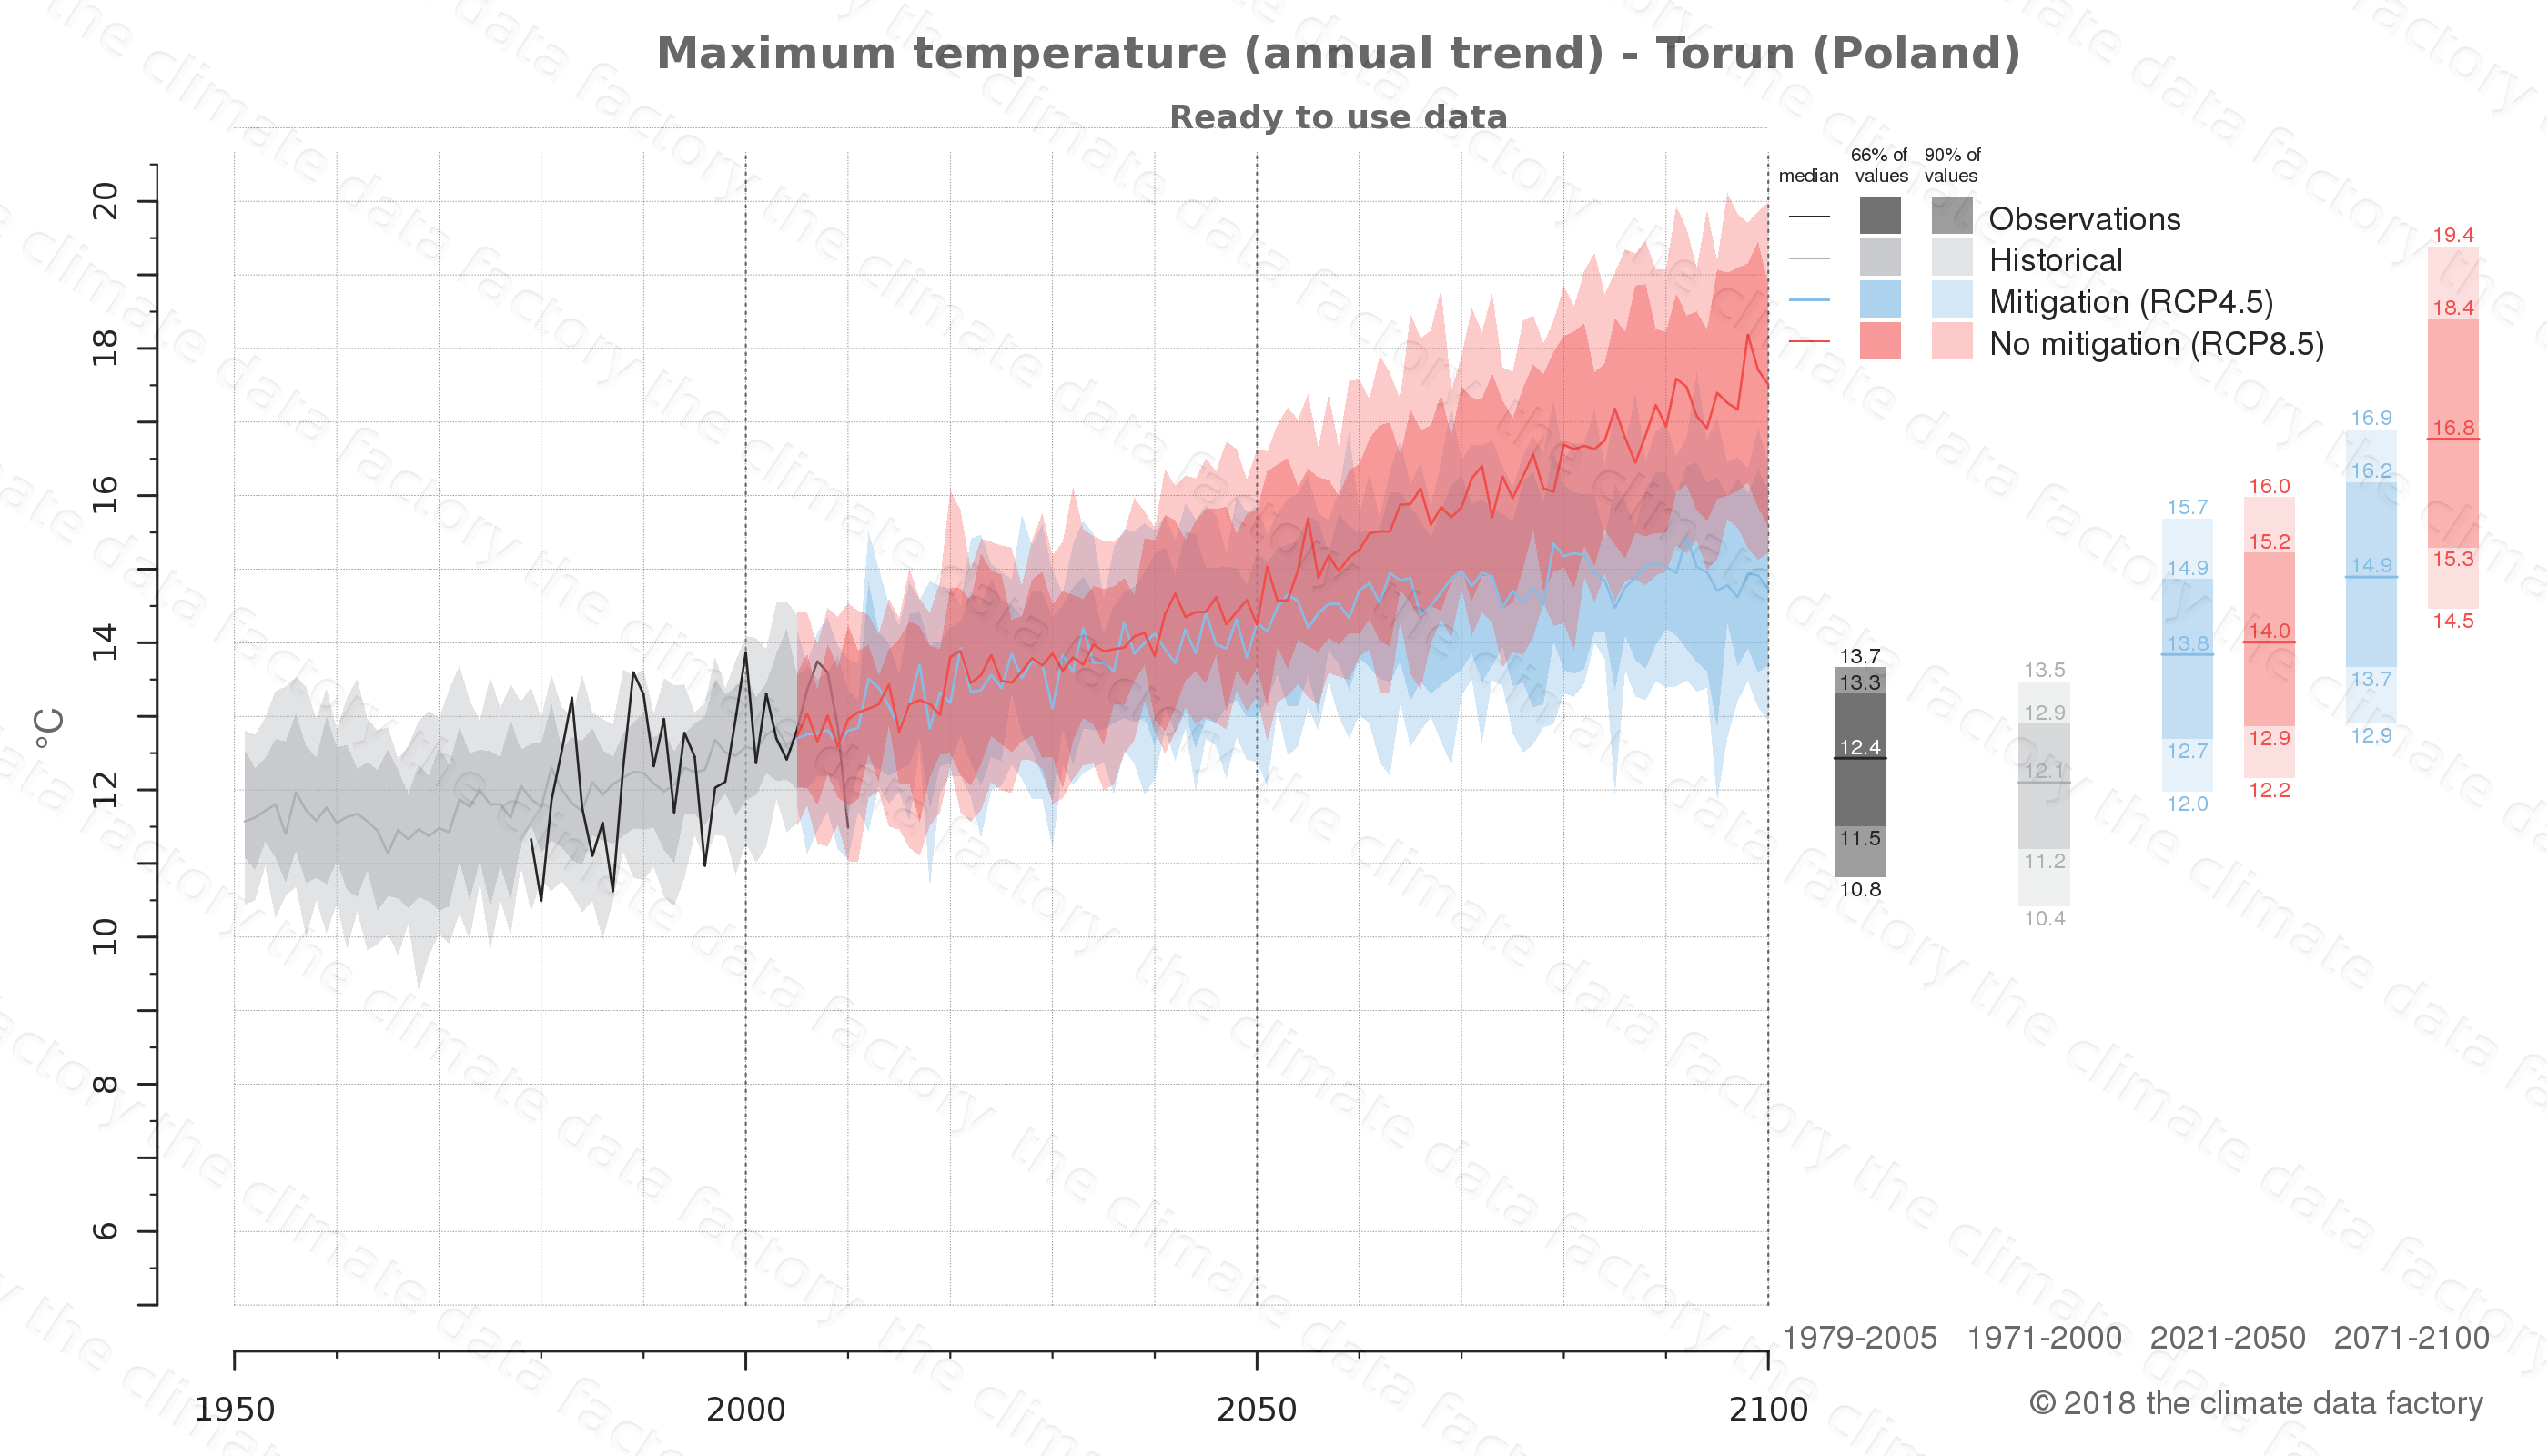 climate change data policy adaptation climate graph city data maximum-temperature torun poland